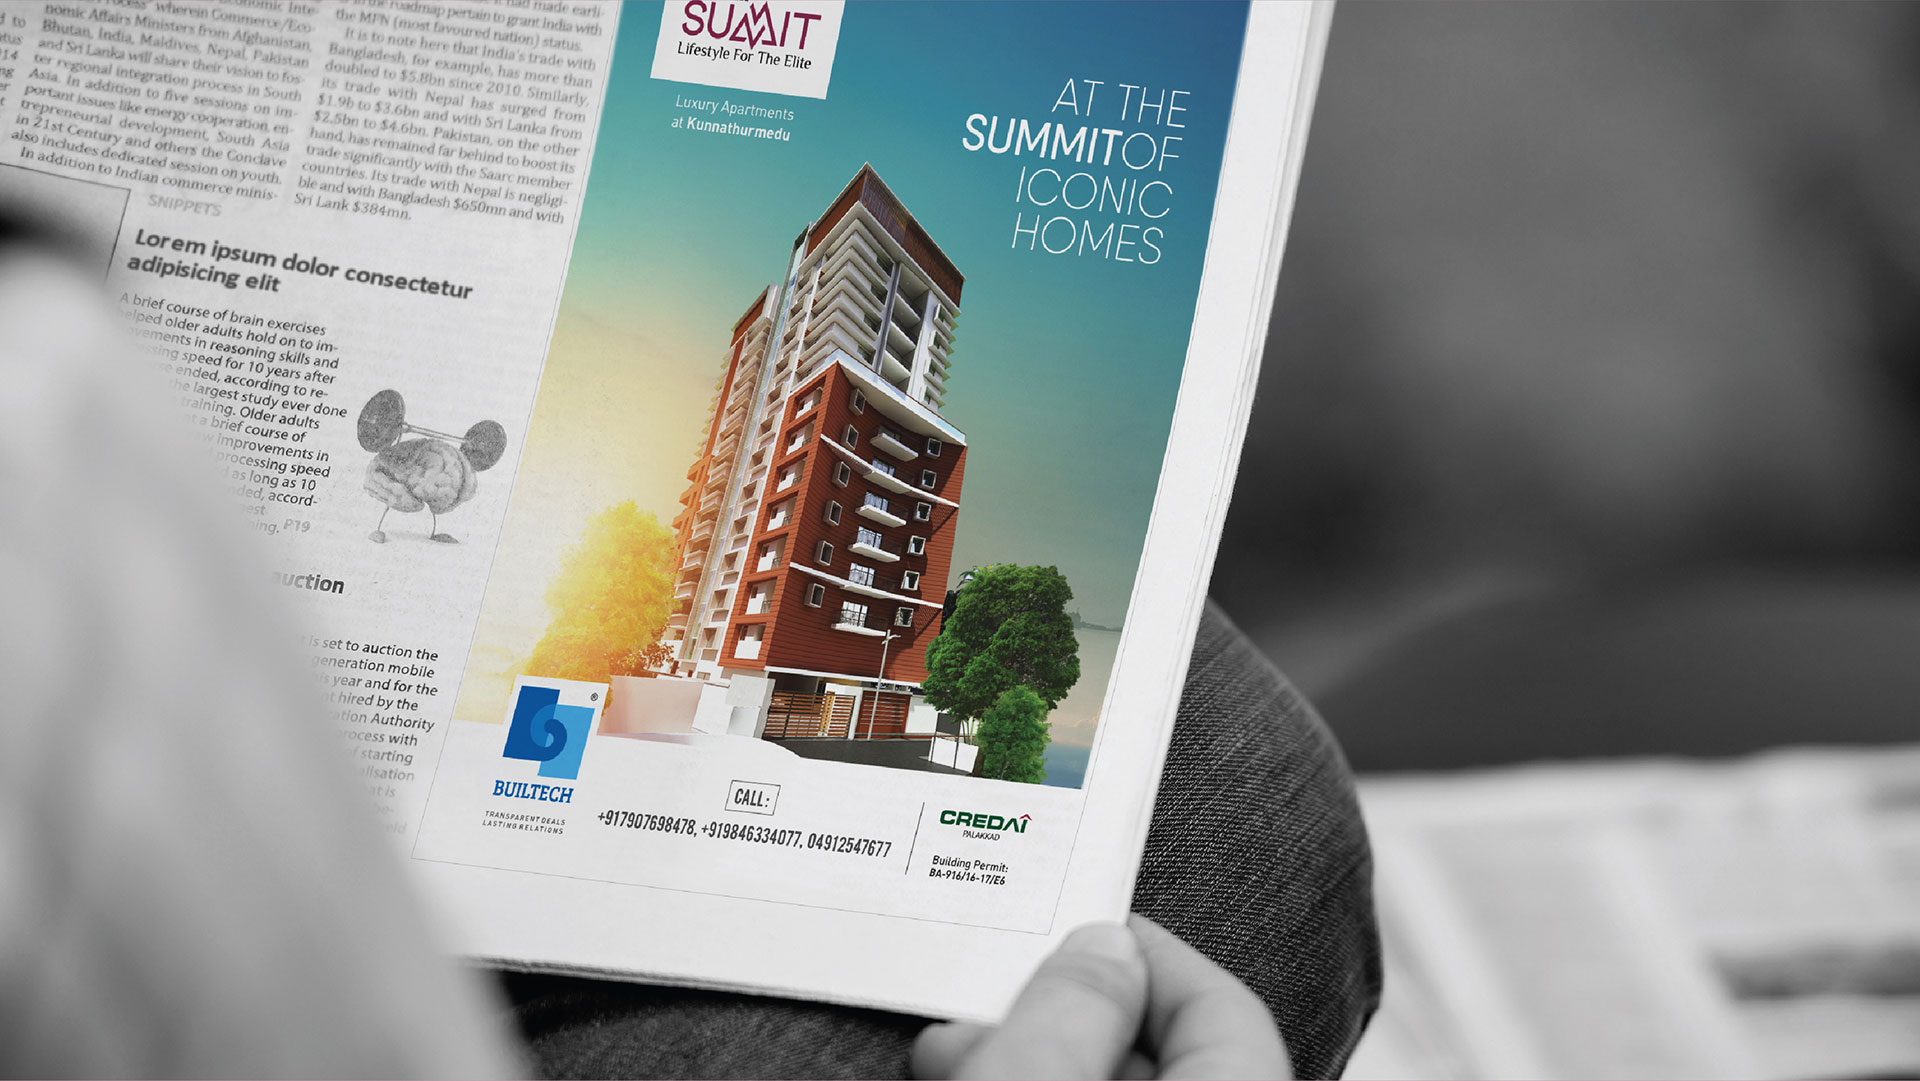 Builtech Palakkad - Summit Appartments Newspaper Print Ad Design